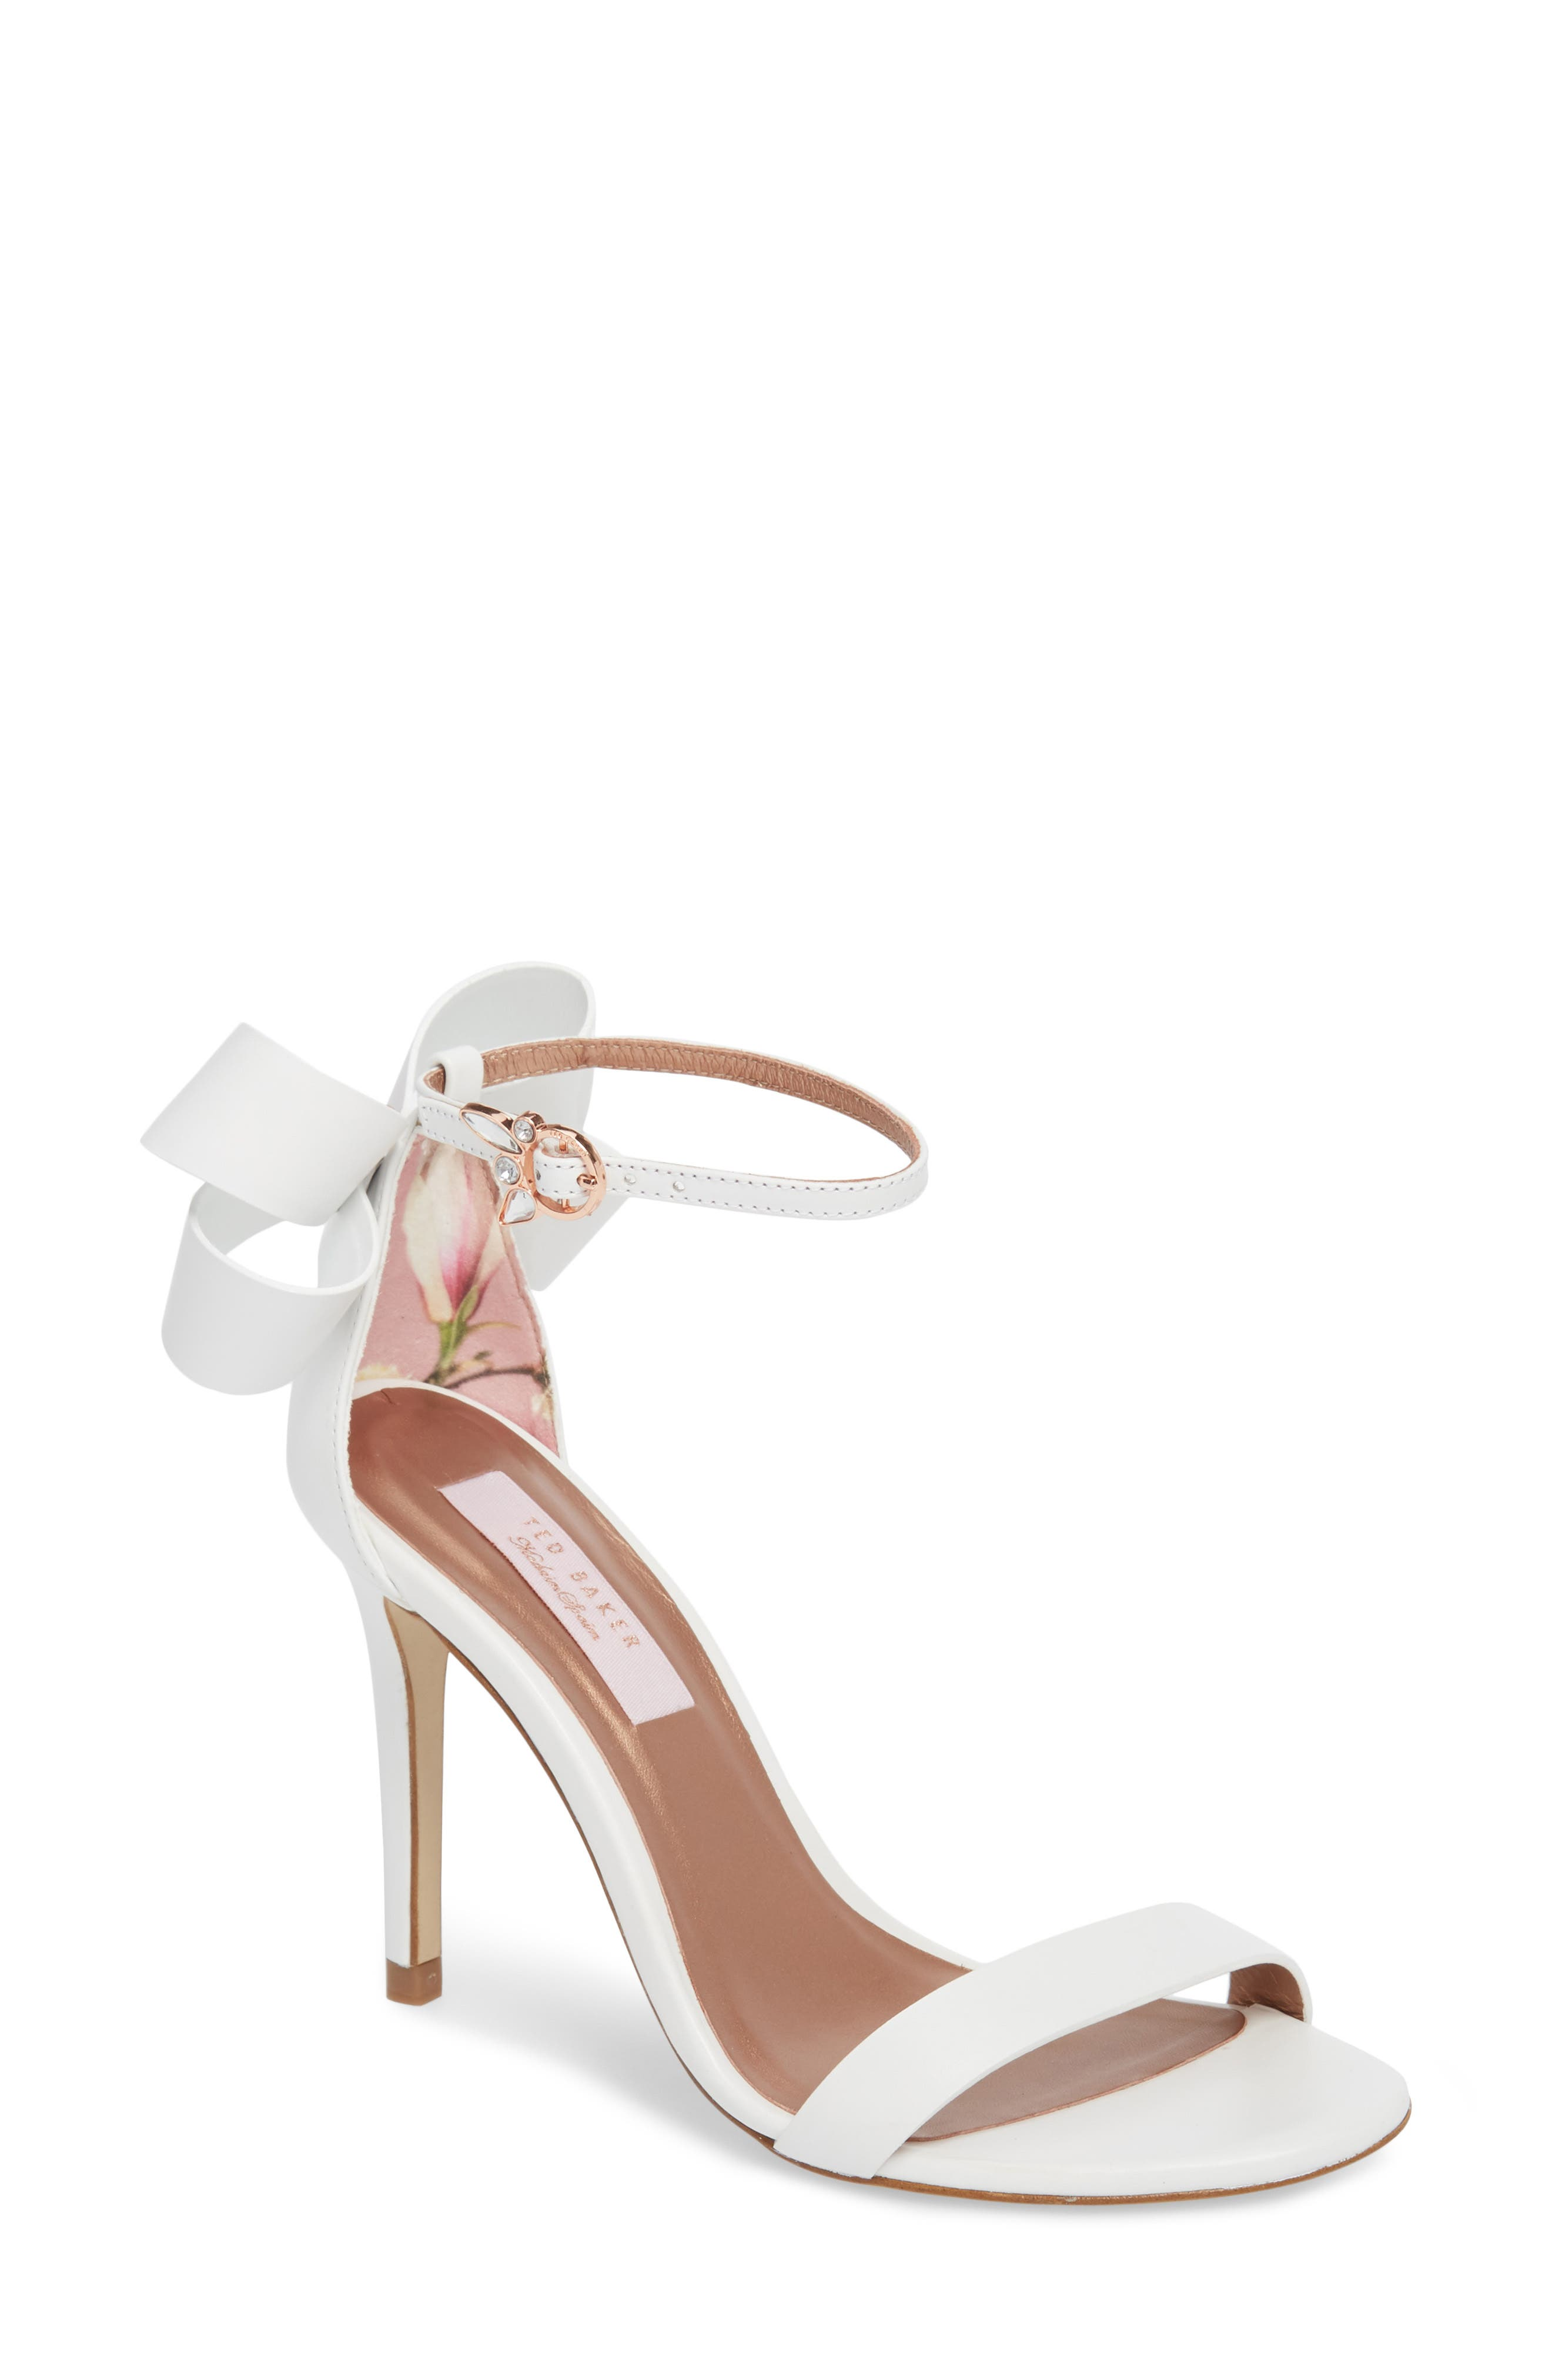 Ankle Strap Sandal,                             Main thumbnail 1, color,                             White Leather